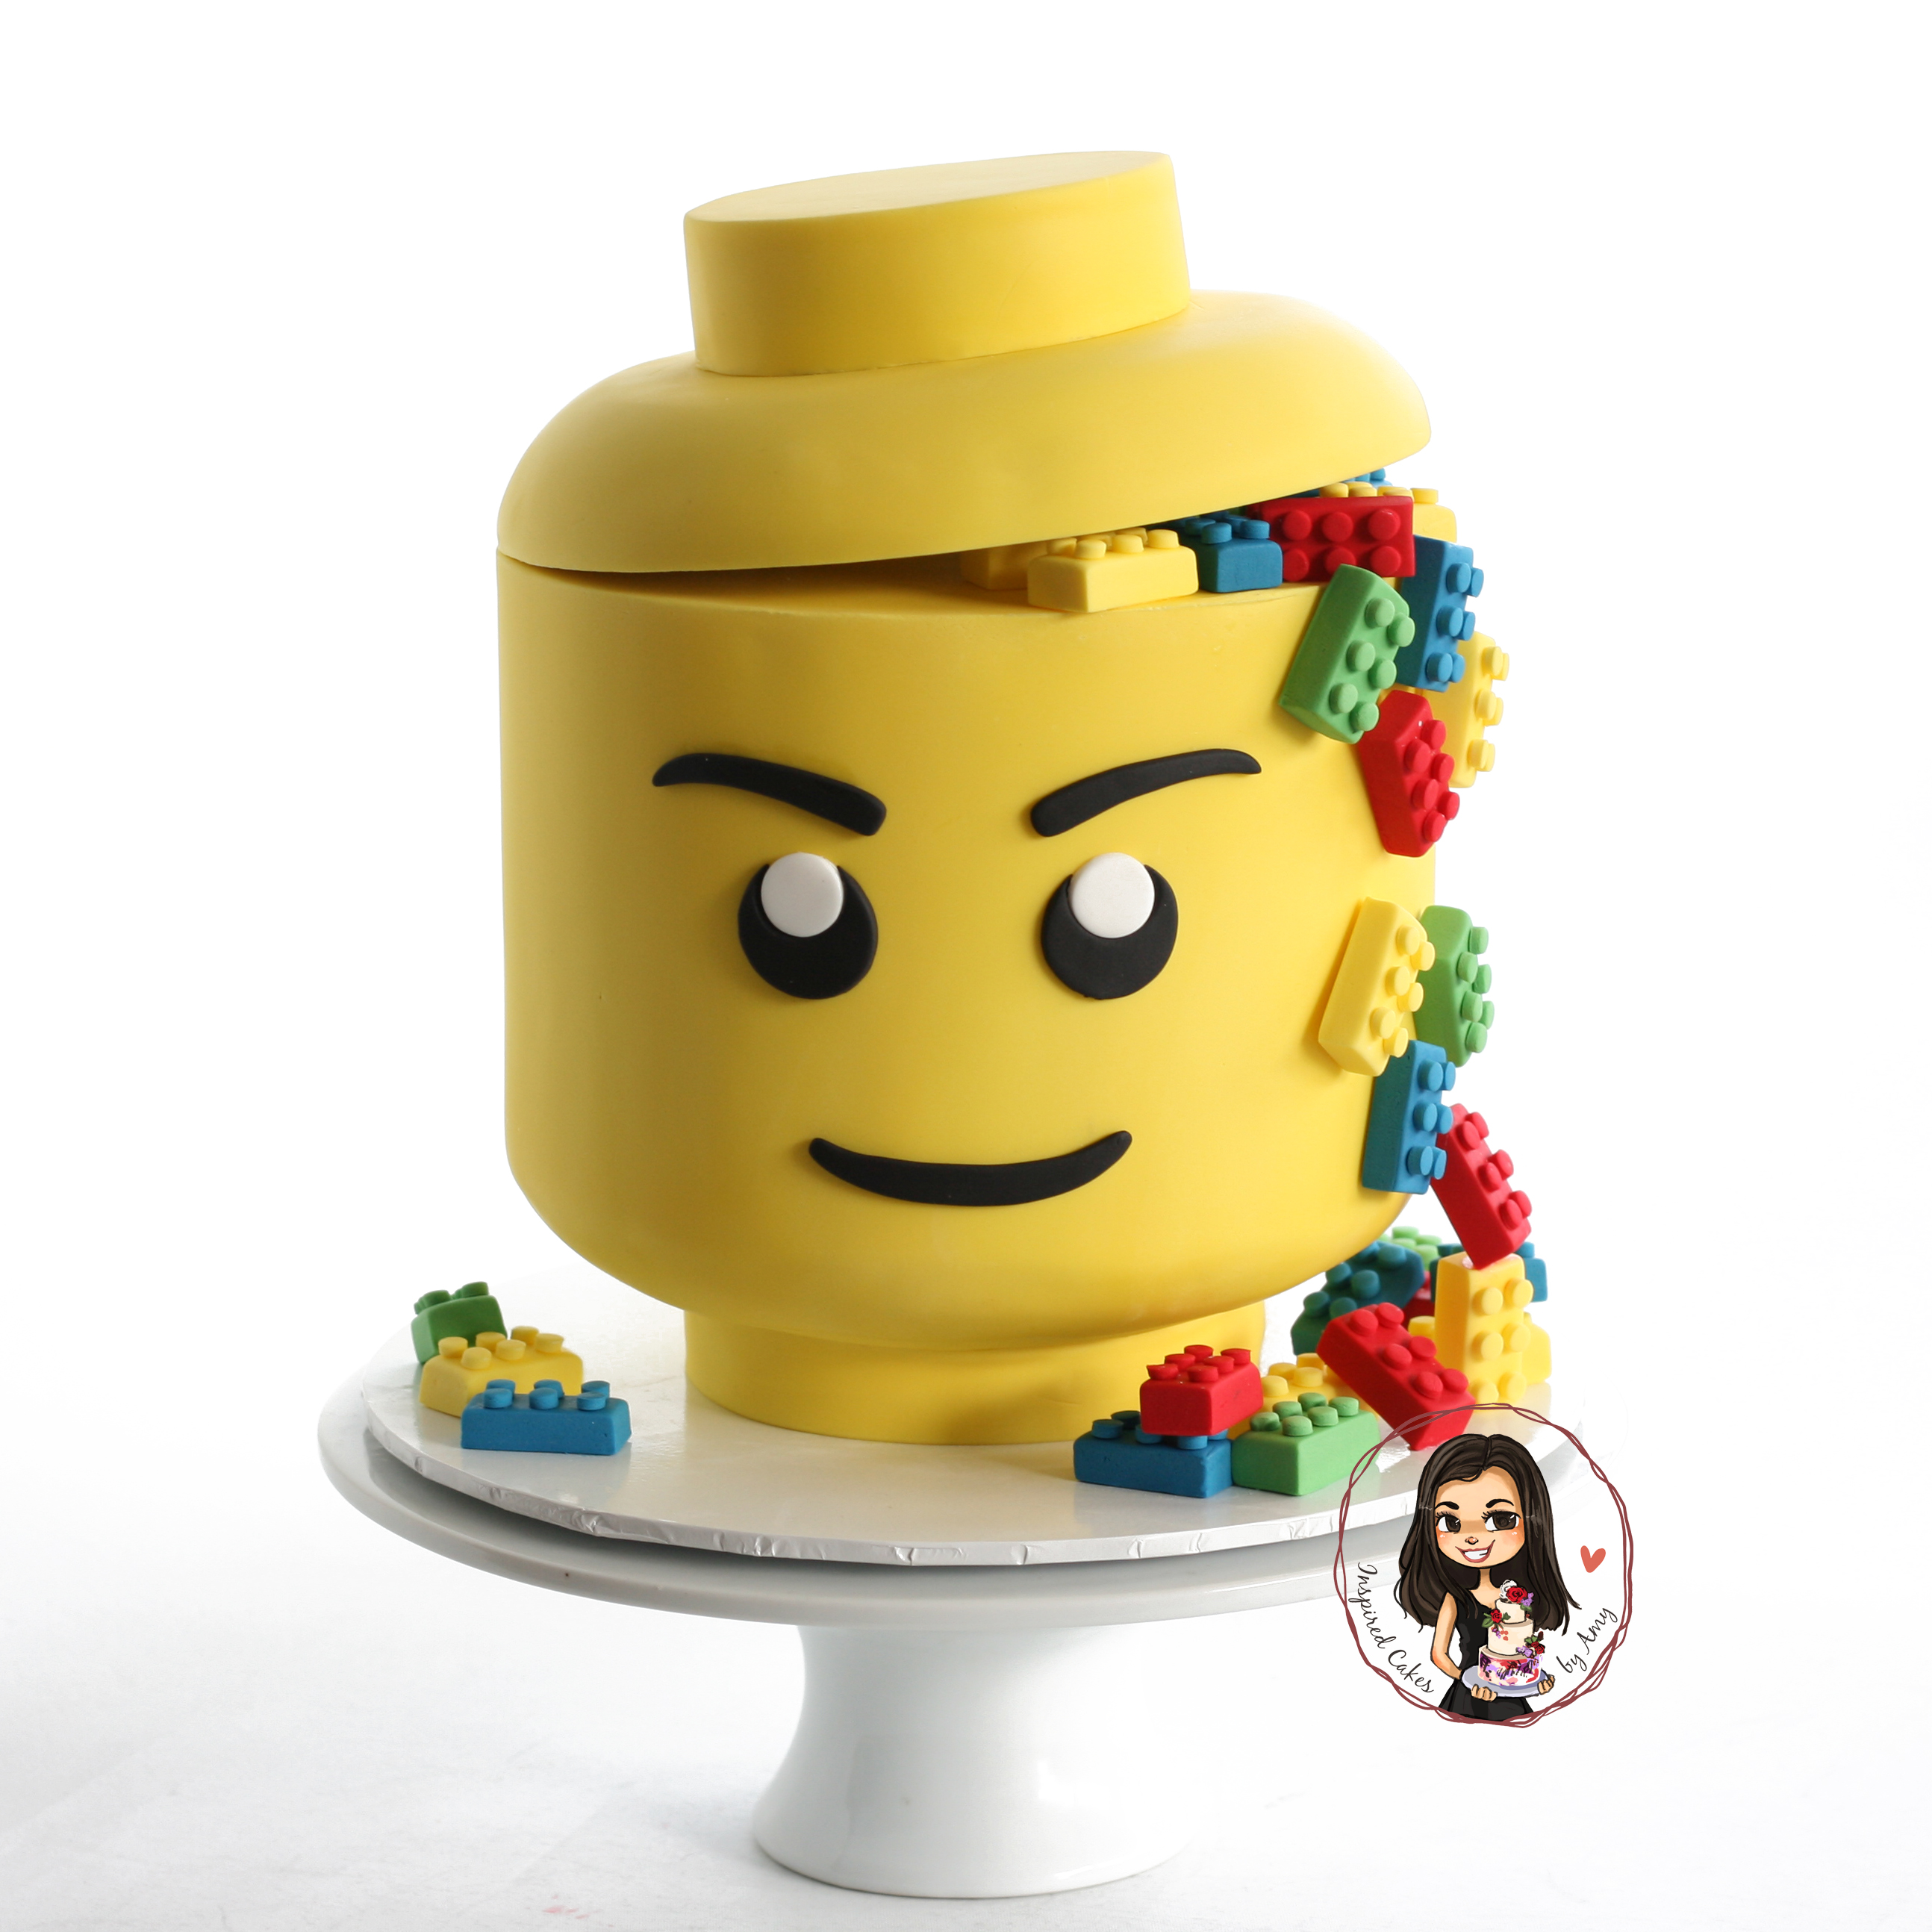 Lego head container cake